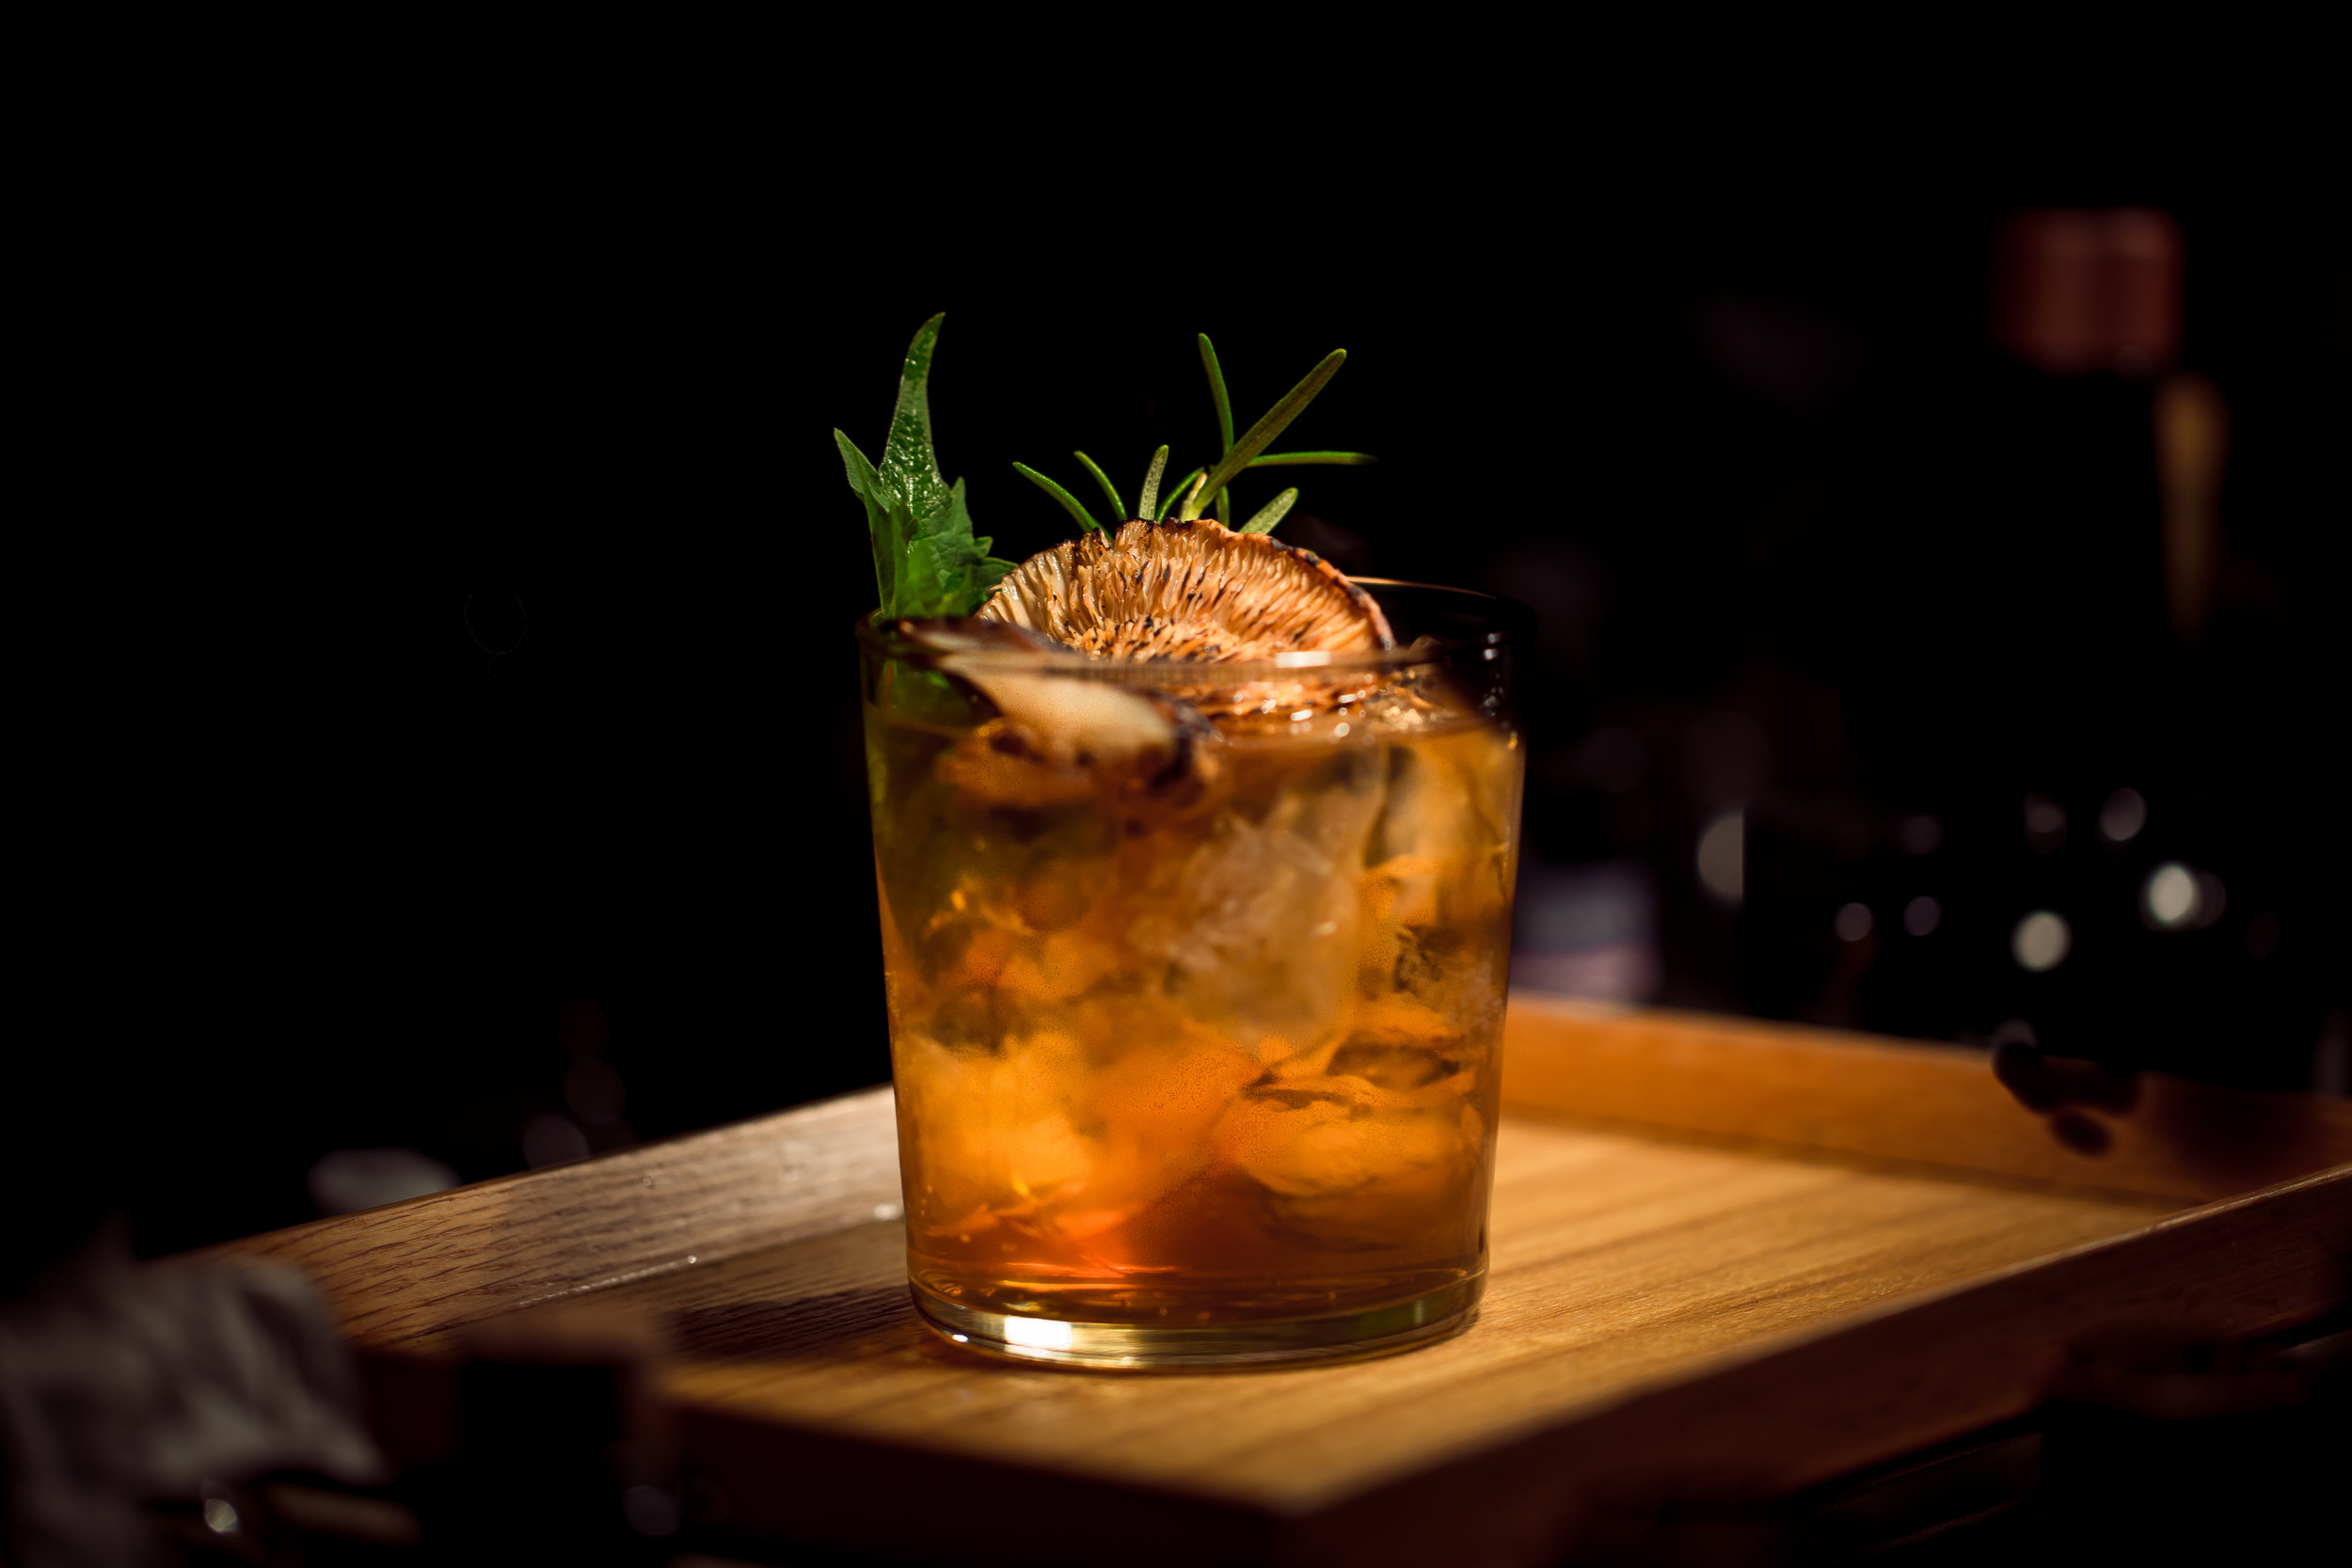 Smoke & Stormy - Dark Rum, Ginger Beer, Orange, Smoked Glass | 12